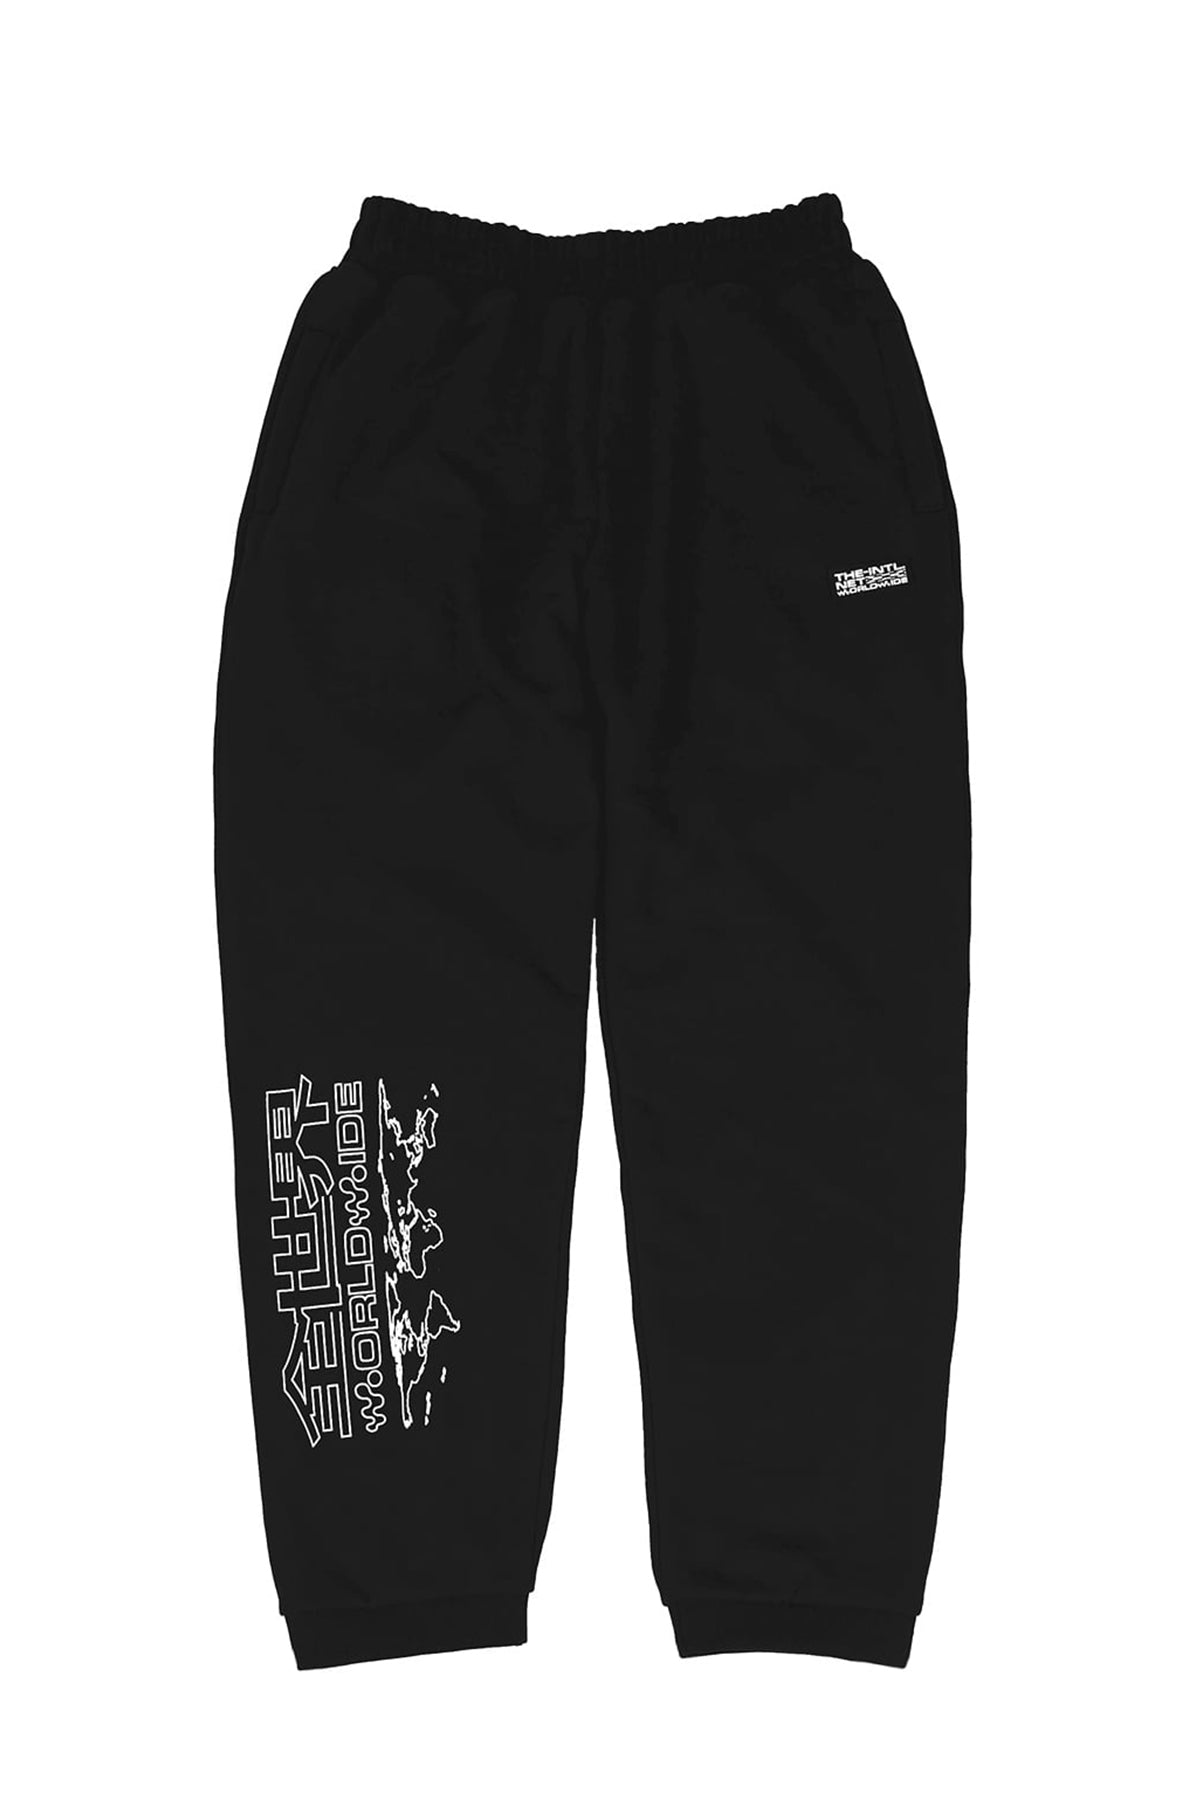 WWM Sweatpants, Pants, The Internatiiional, SUPERCONSCIOUS BERLIN- SUPERCONSCIOUS BERLIN